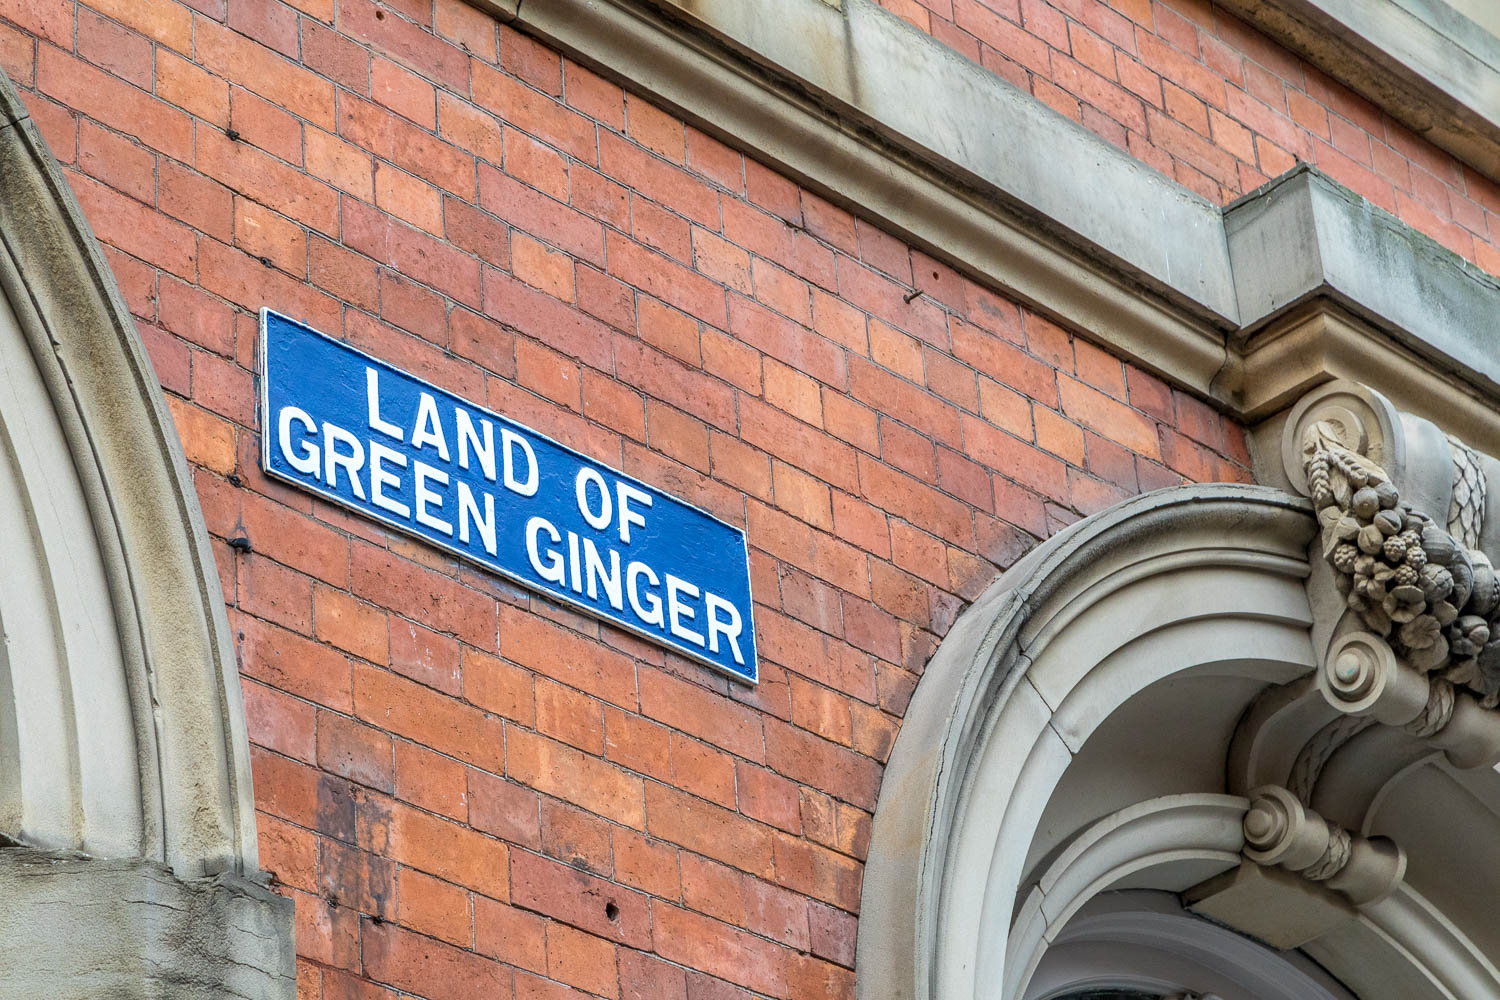 Hull Fish Trail, Land of Green Ginger